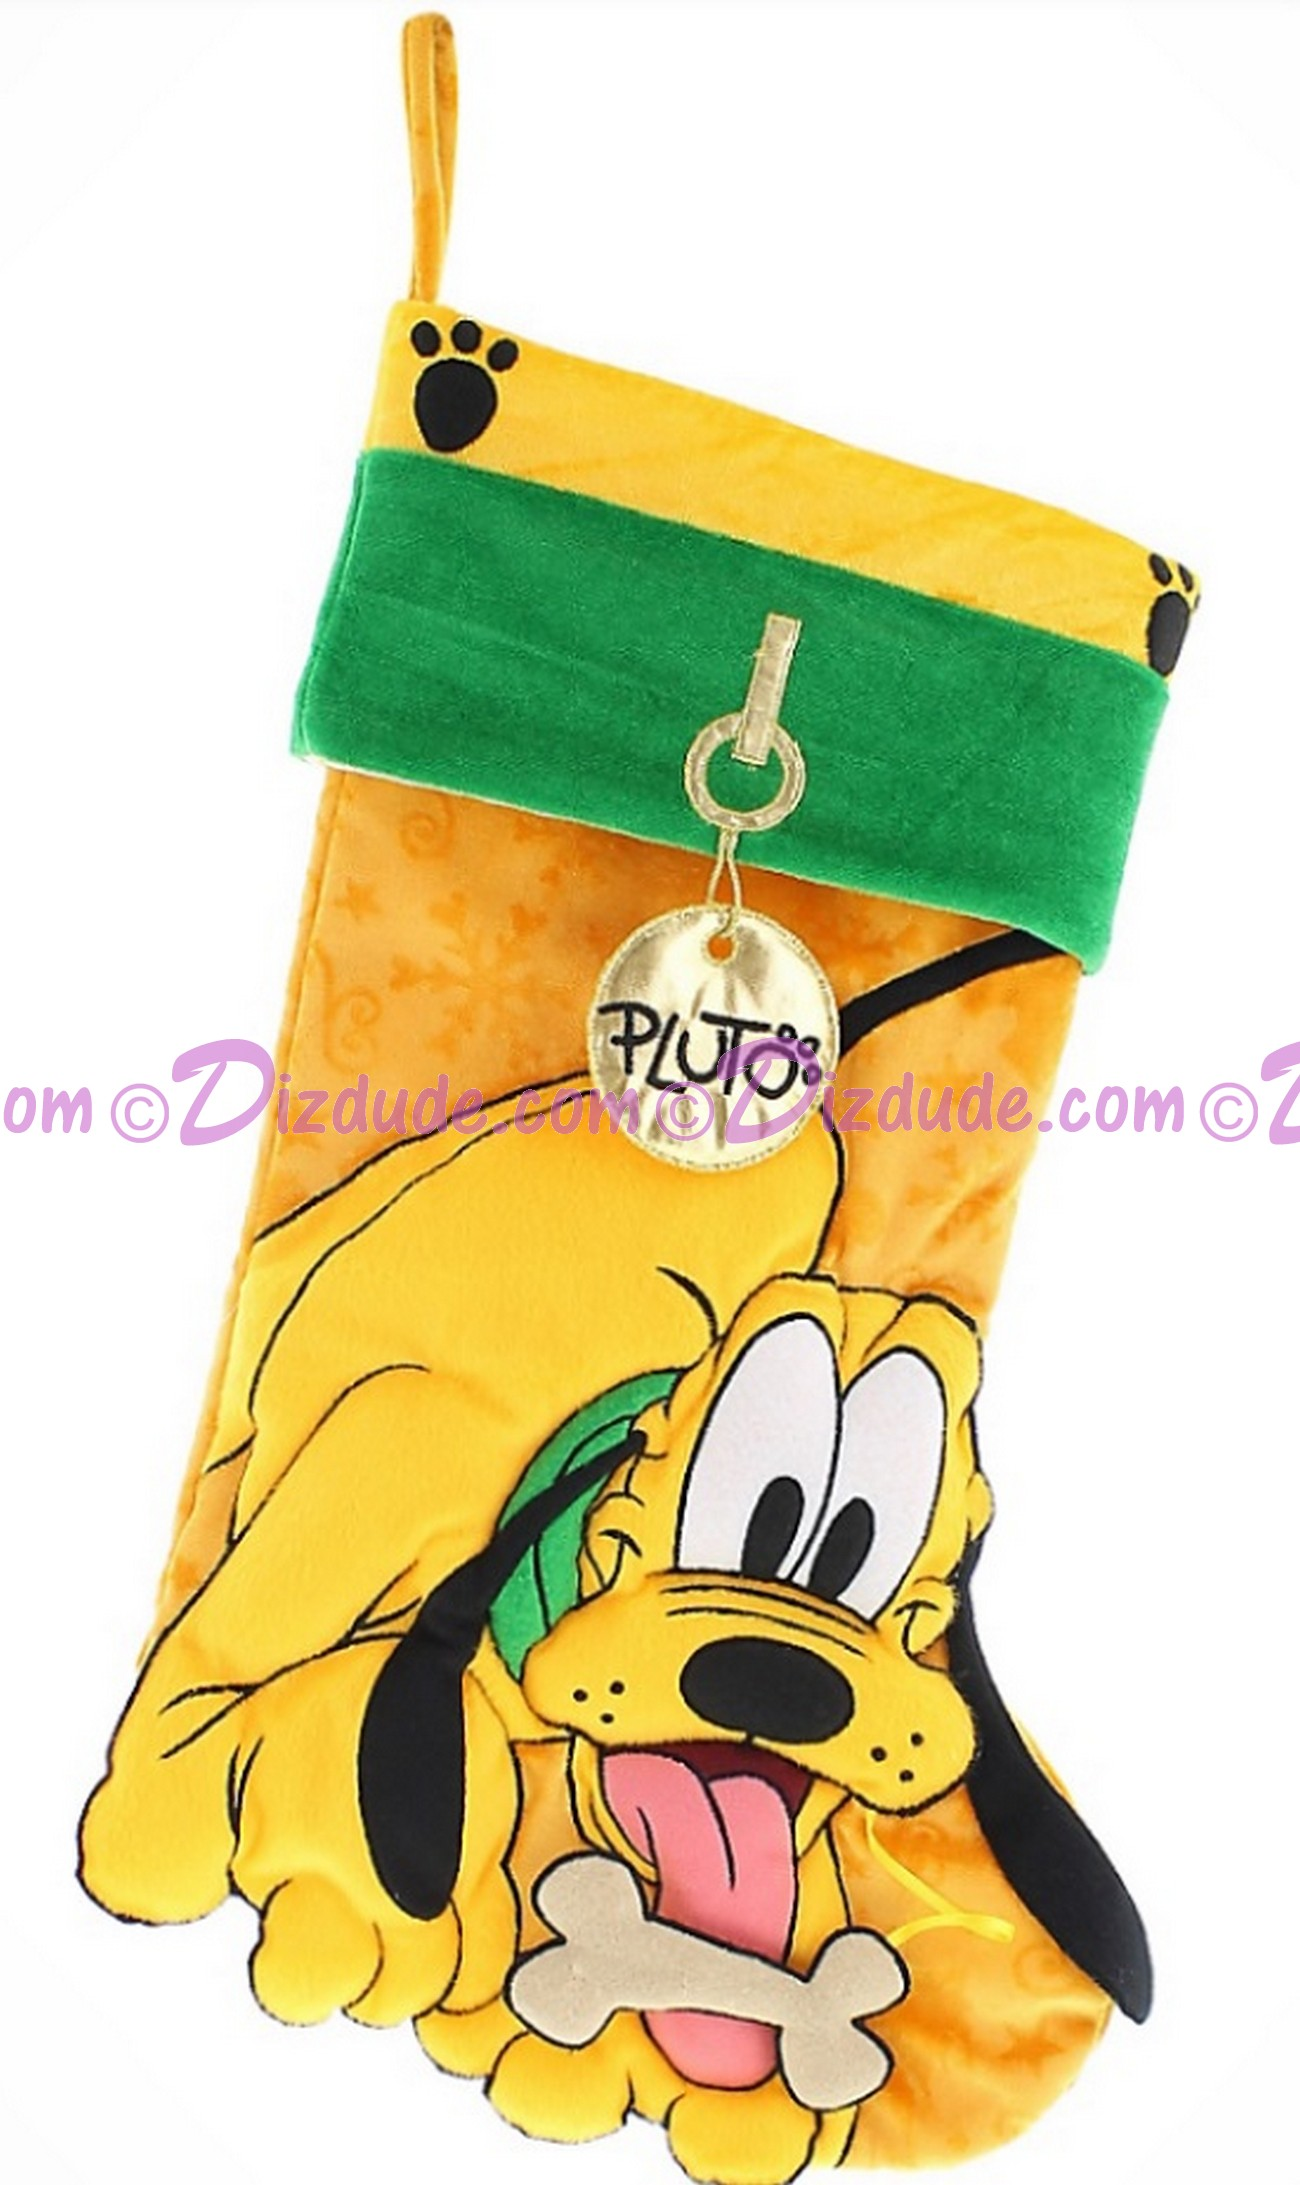 Disney Pluto Plush Christmas Stocking © Dizdude.com